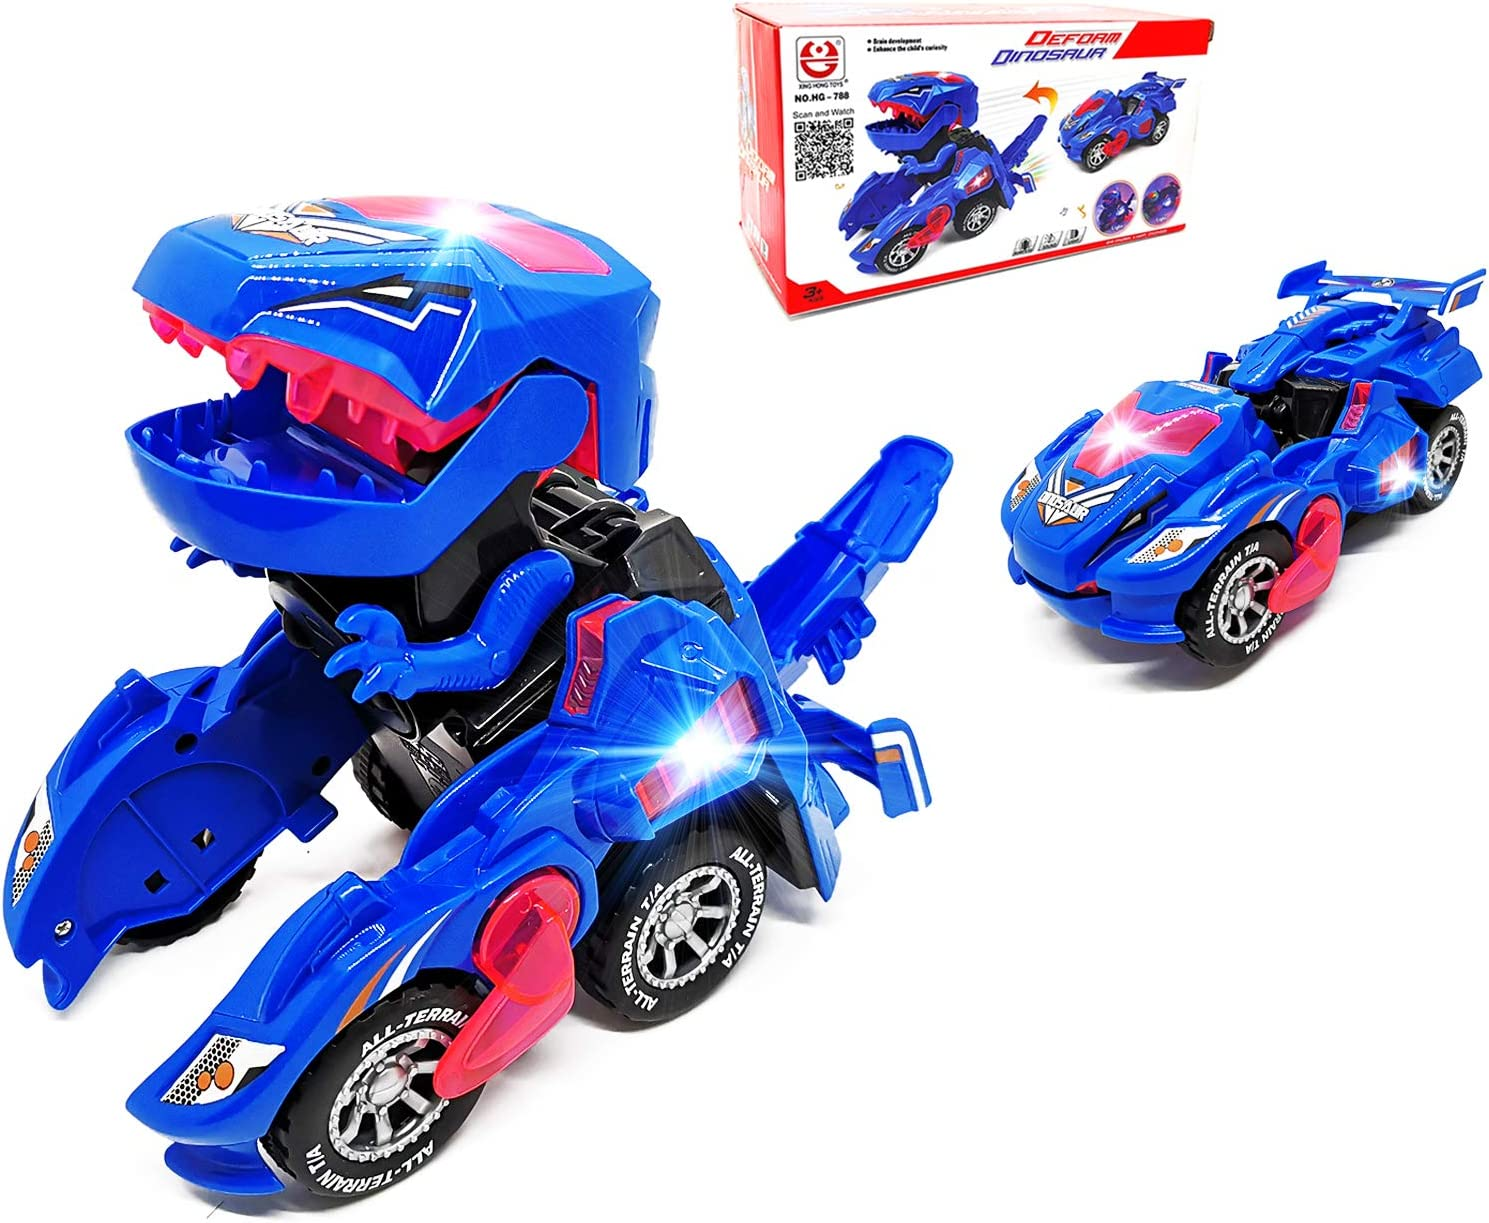 Dinosaur transforming gift toy for boys, blue and red color